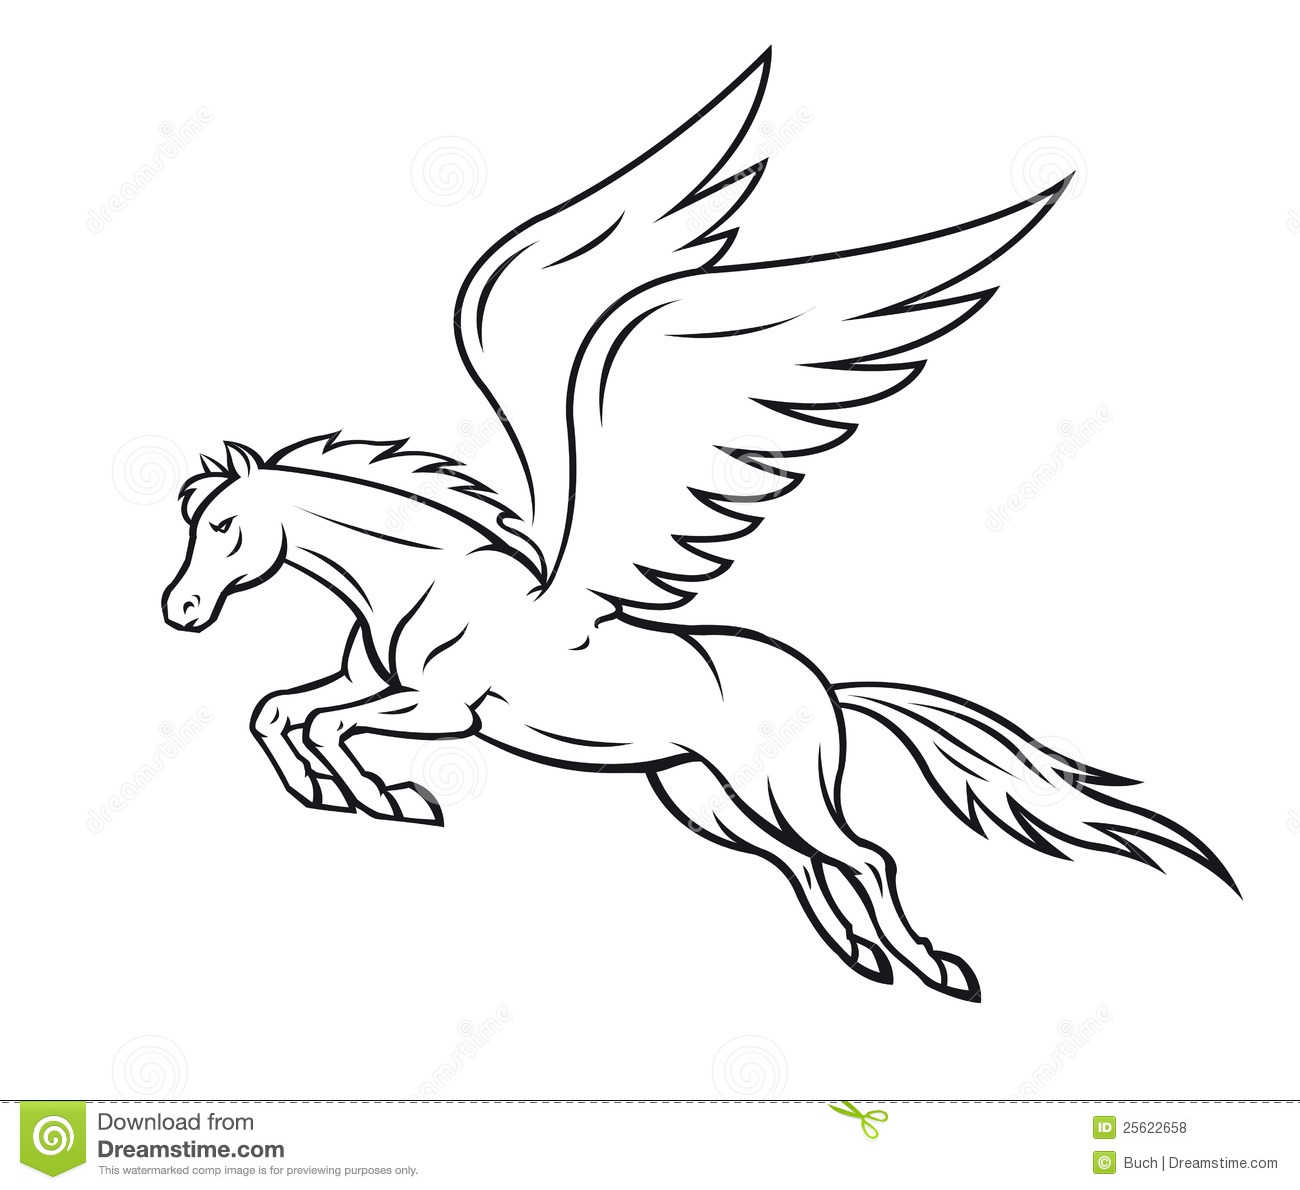 72 MEANING OF UNICORN IN ENGLISH, OF UNICORN MEANING ENGLISH IN